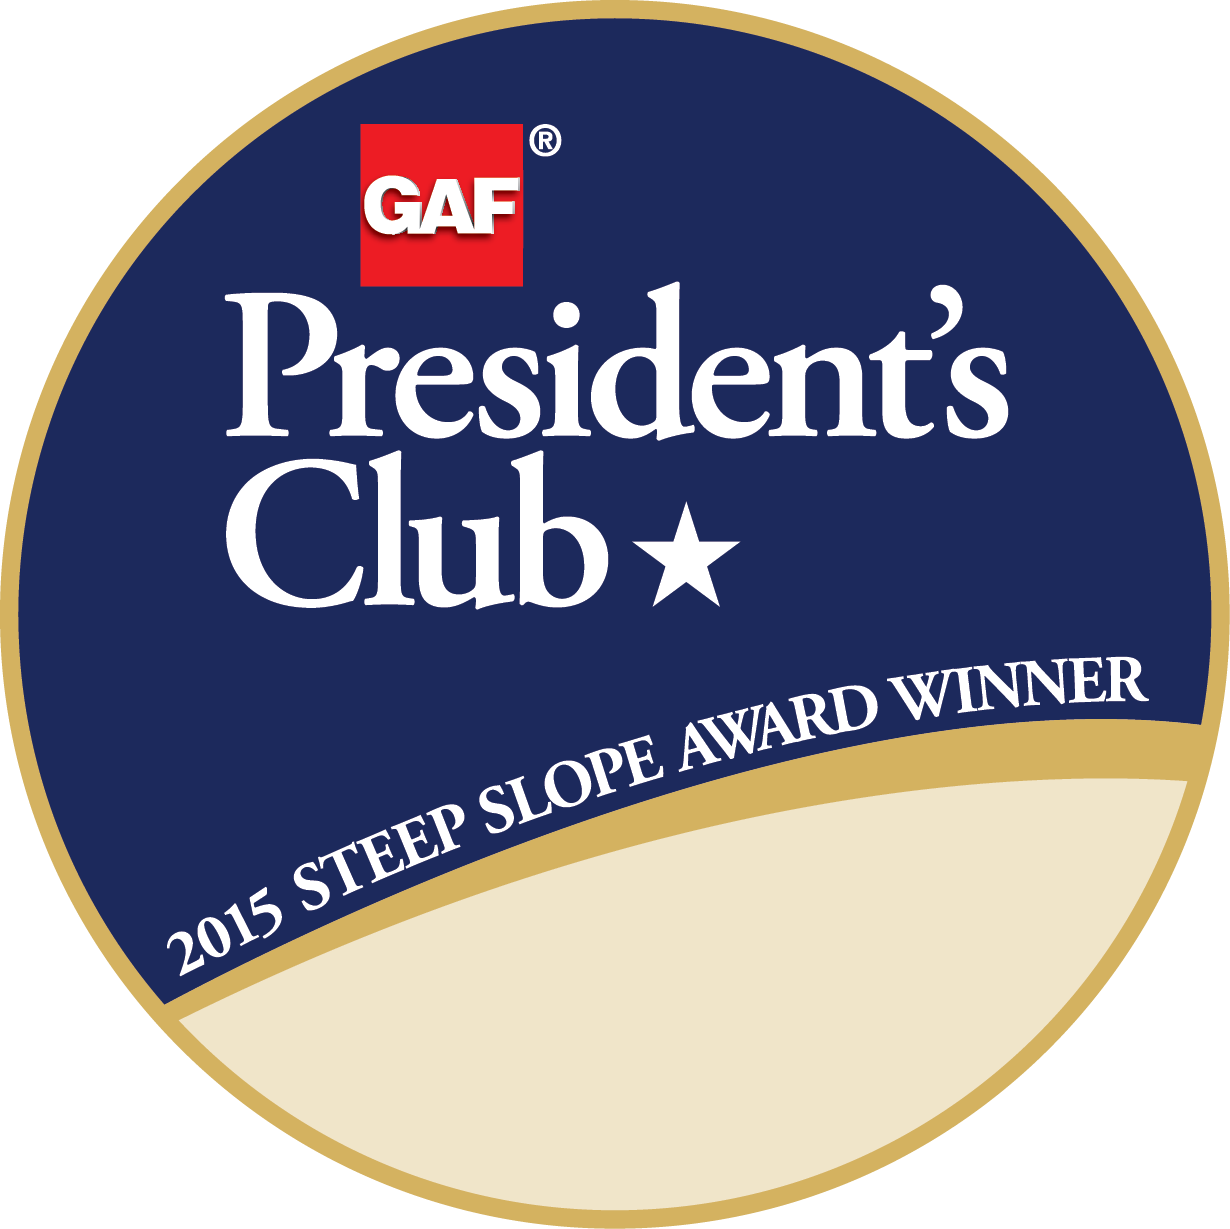 Graves Bros. Home Improvement Receives GAF's Prestigious 2015 President's Club Award